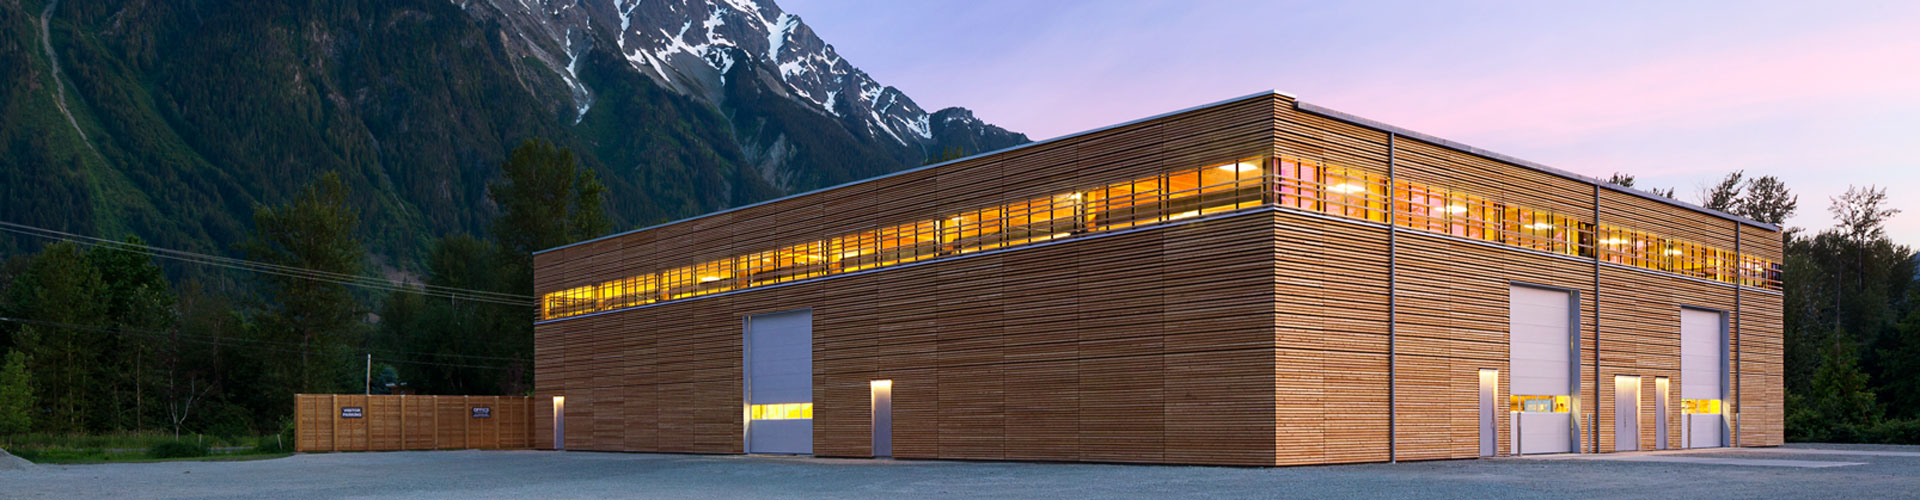 BC Passive House Factory - Hemsworth Architecture